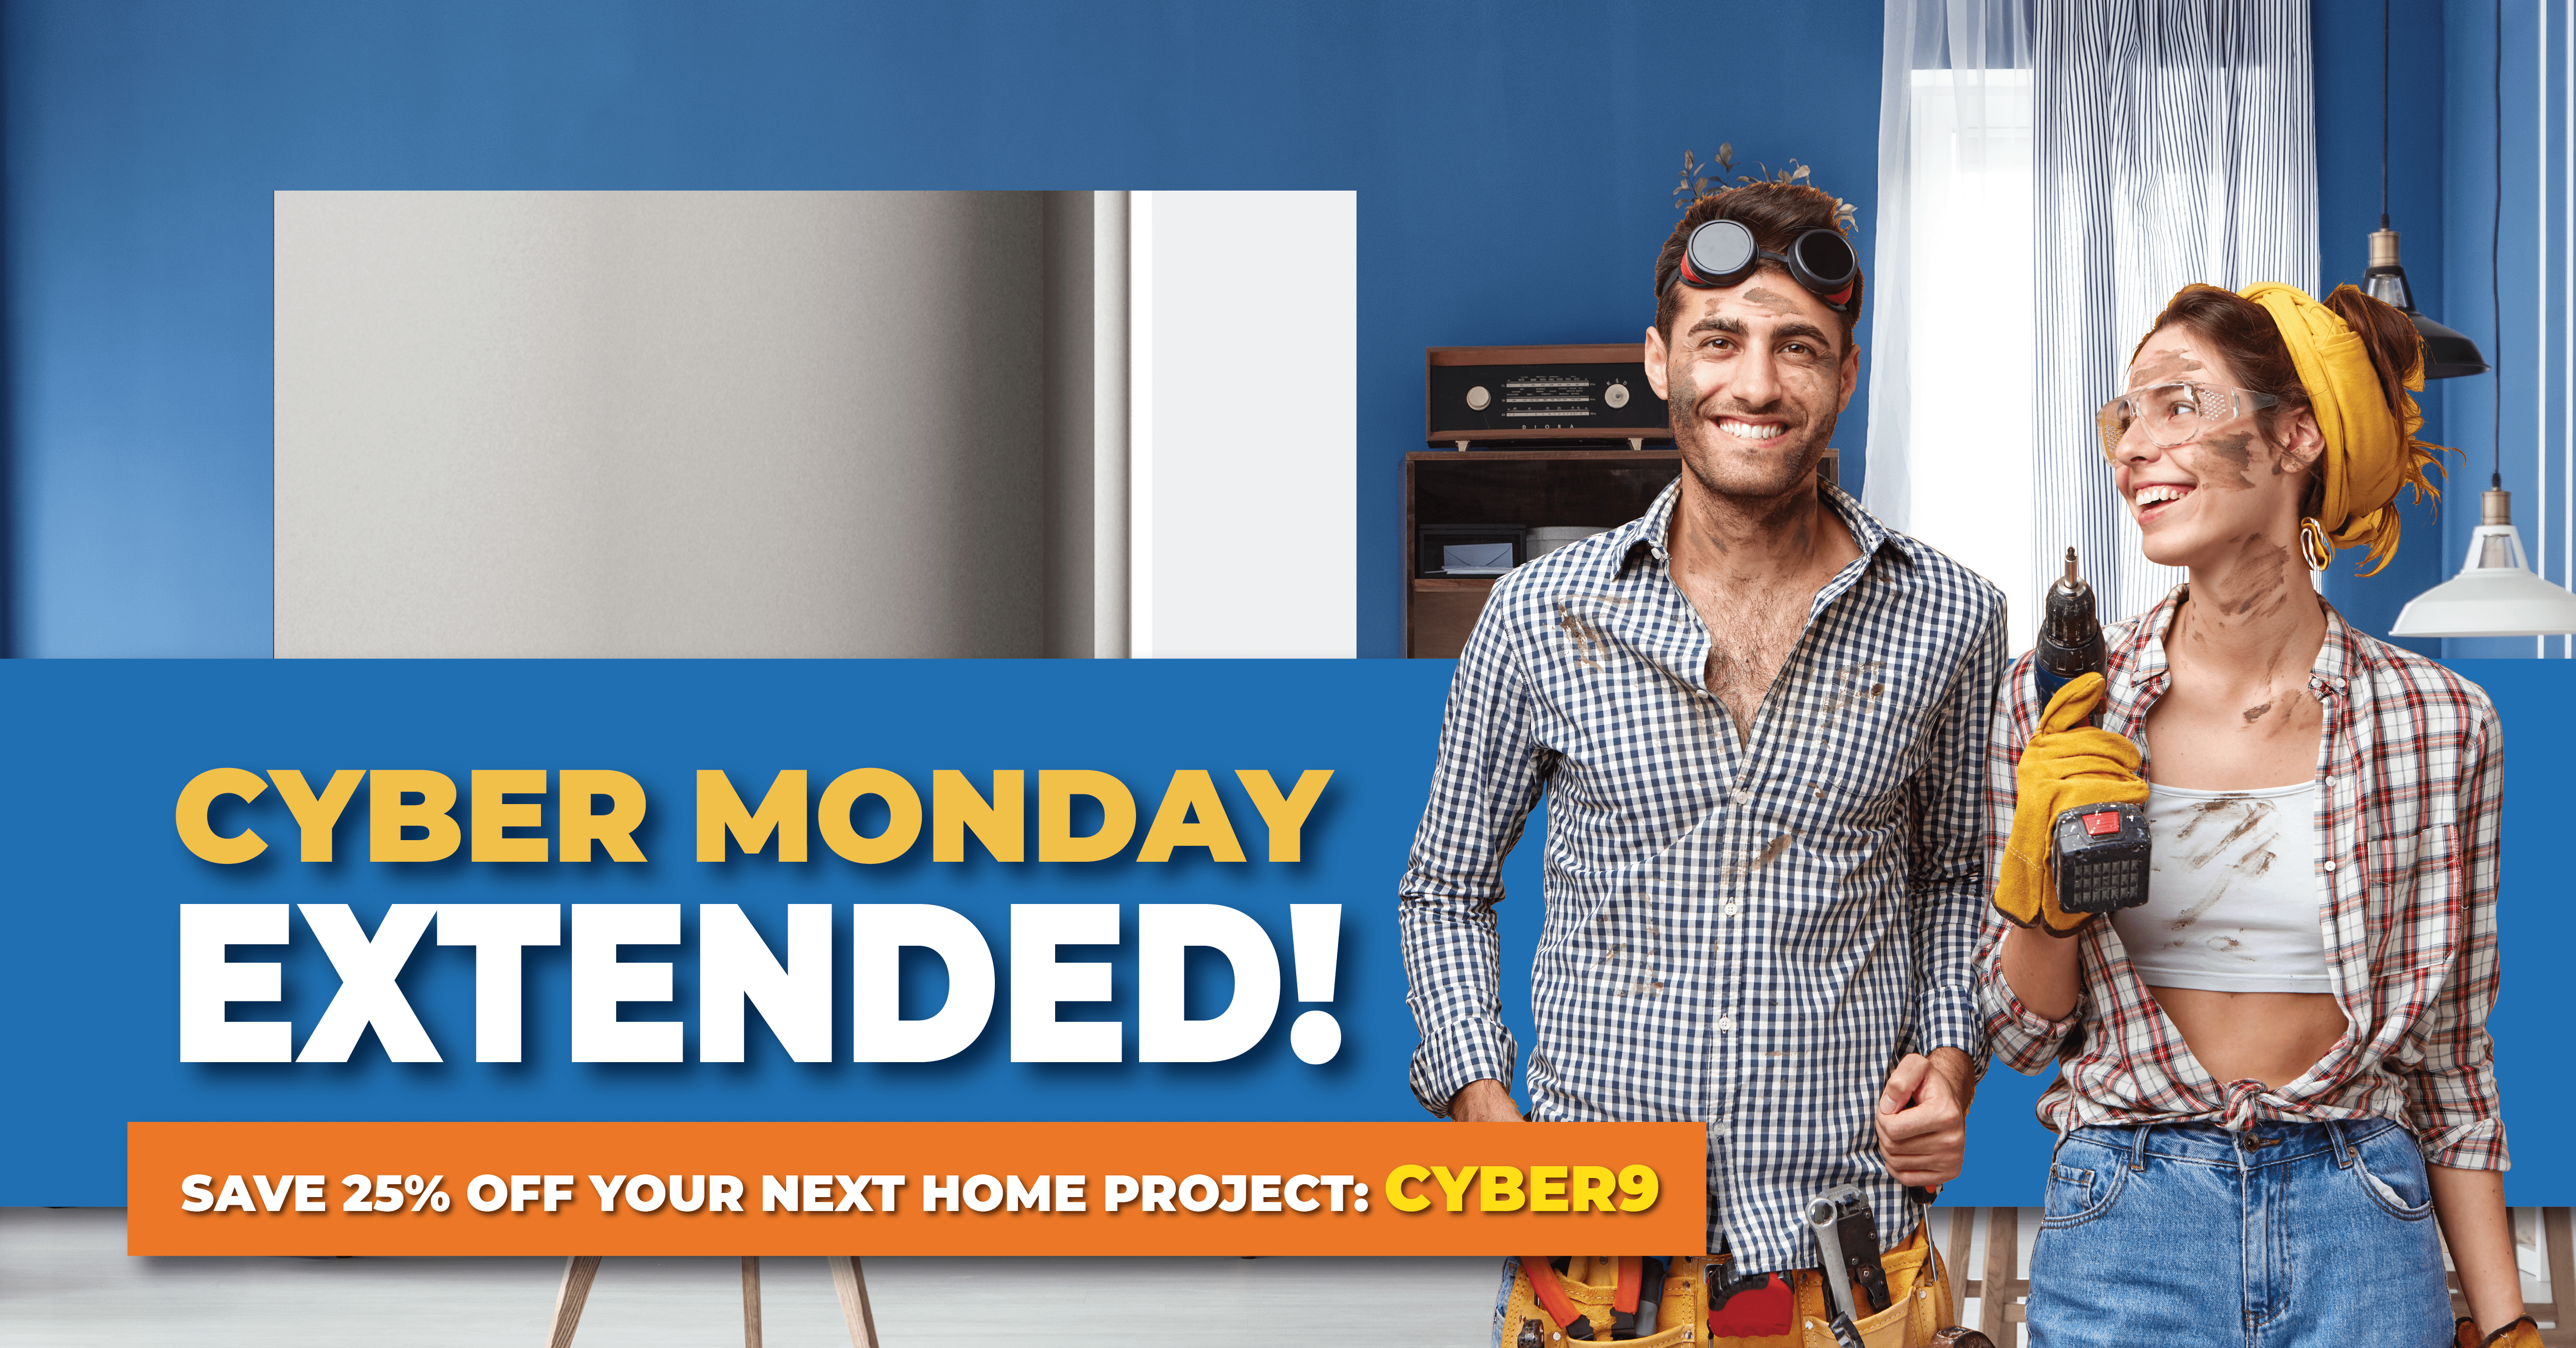 25% off and free shipping for Cyber Monday!